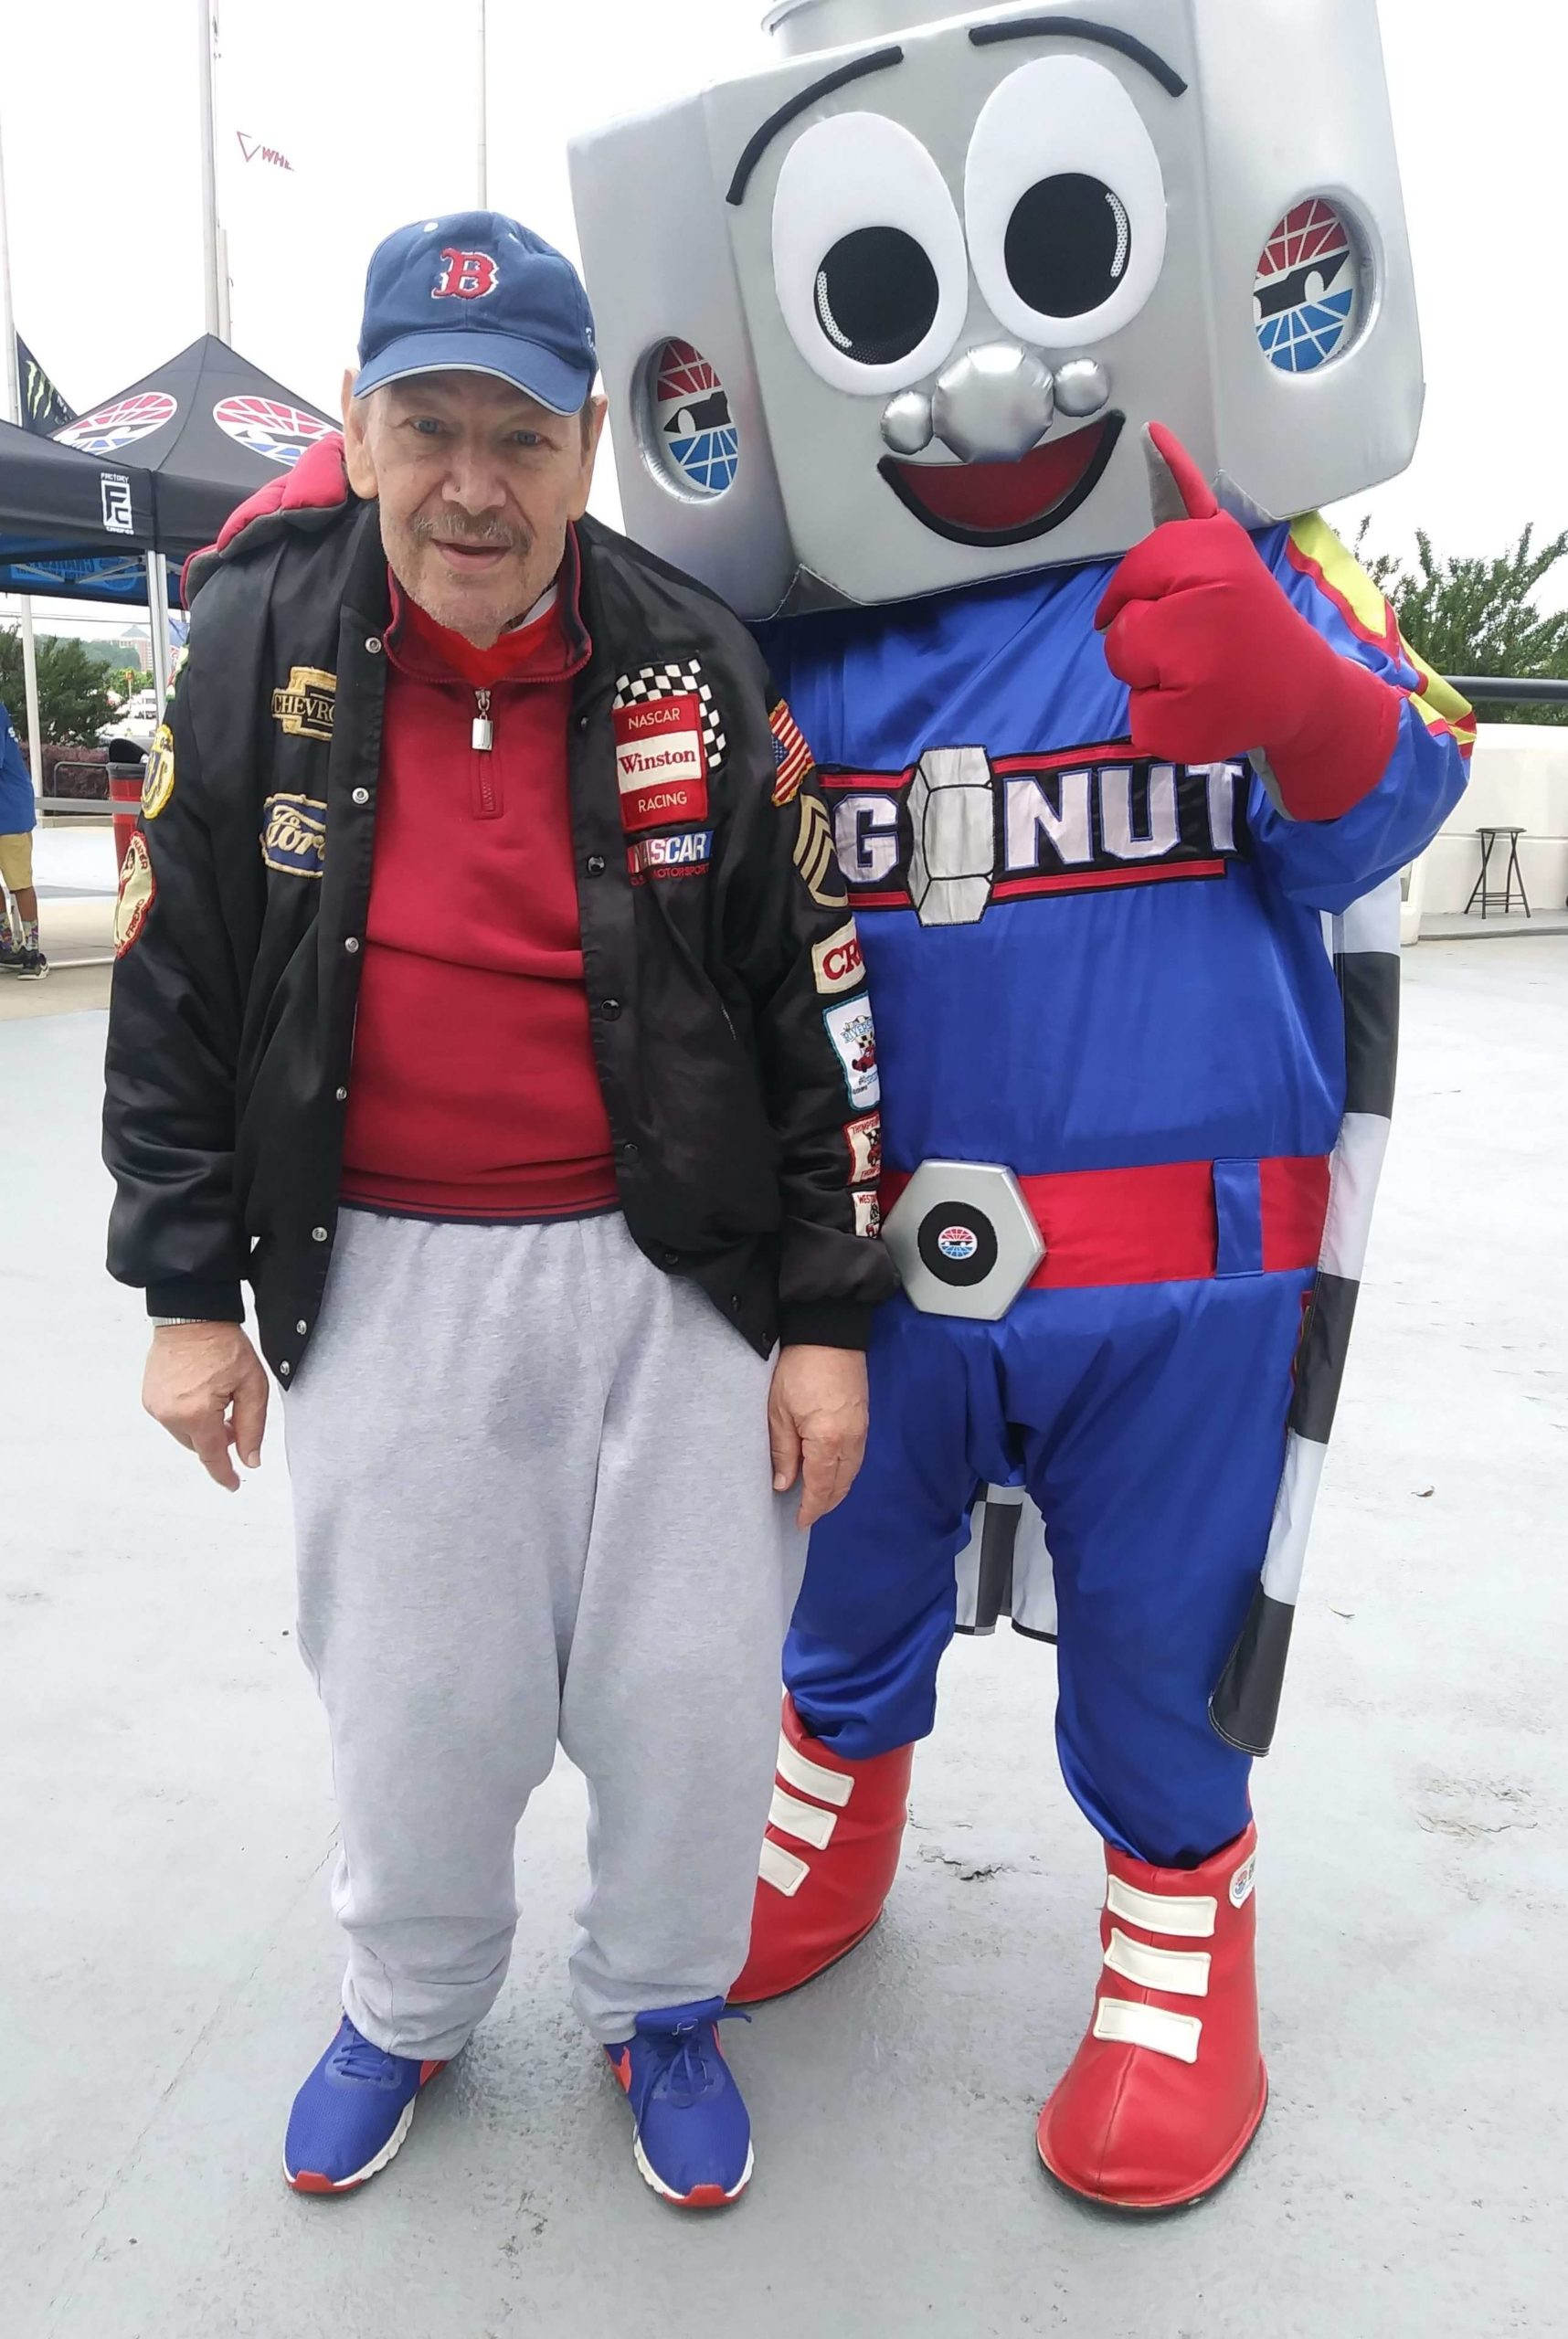 Thrive participants at race track with mascot